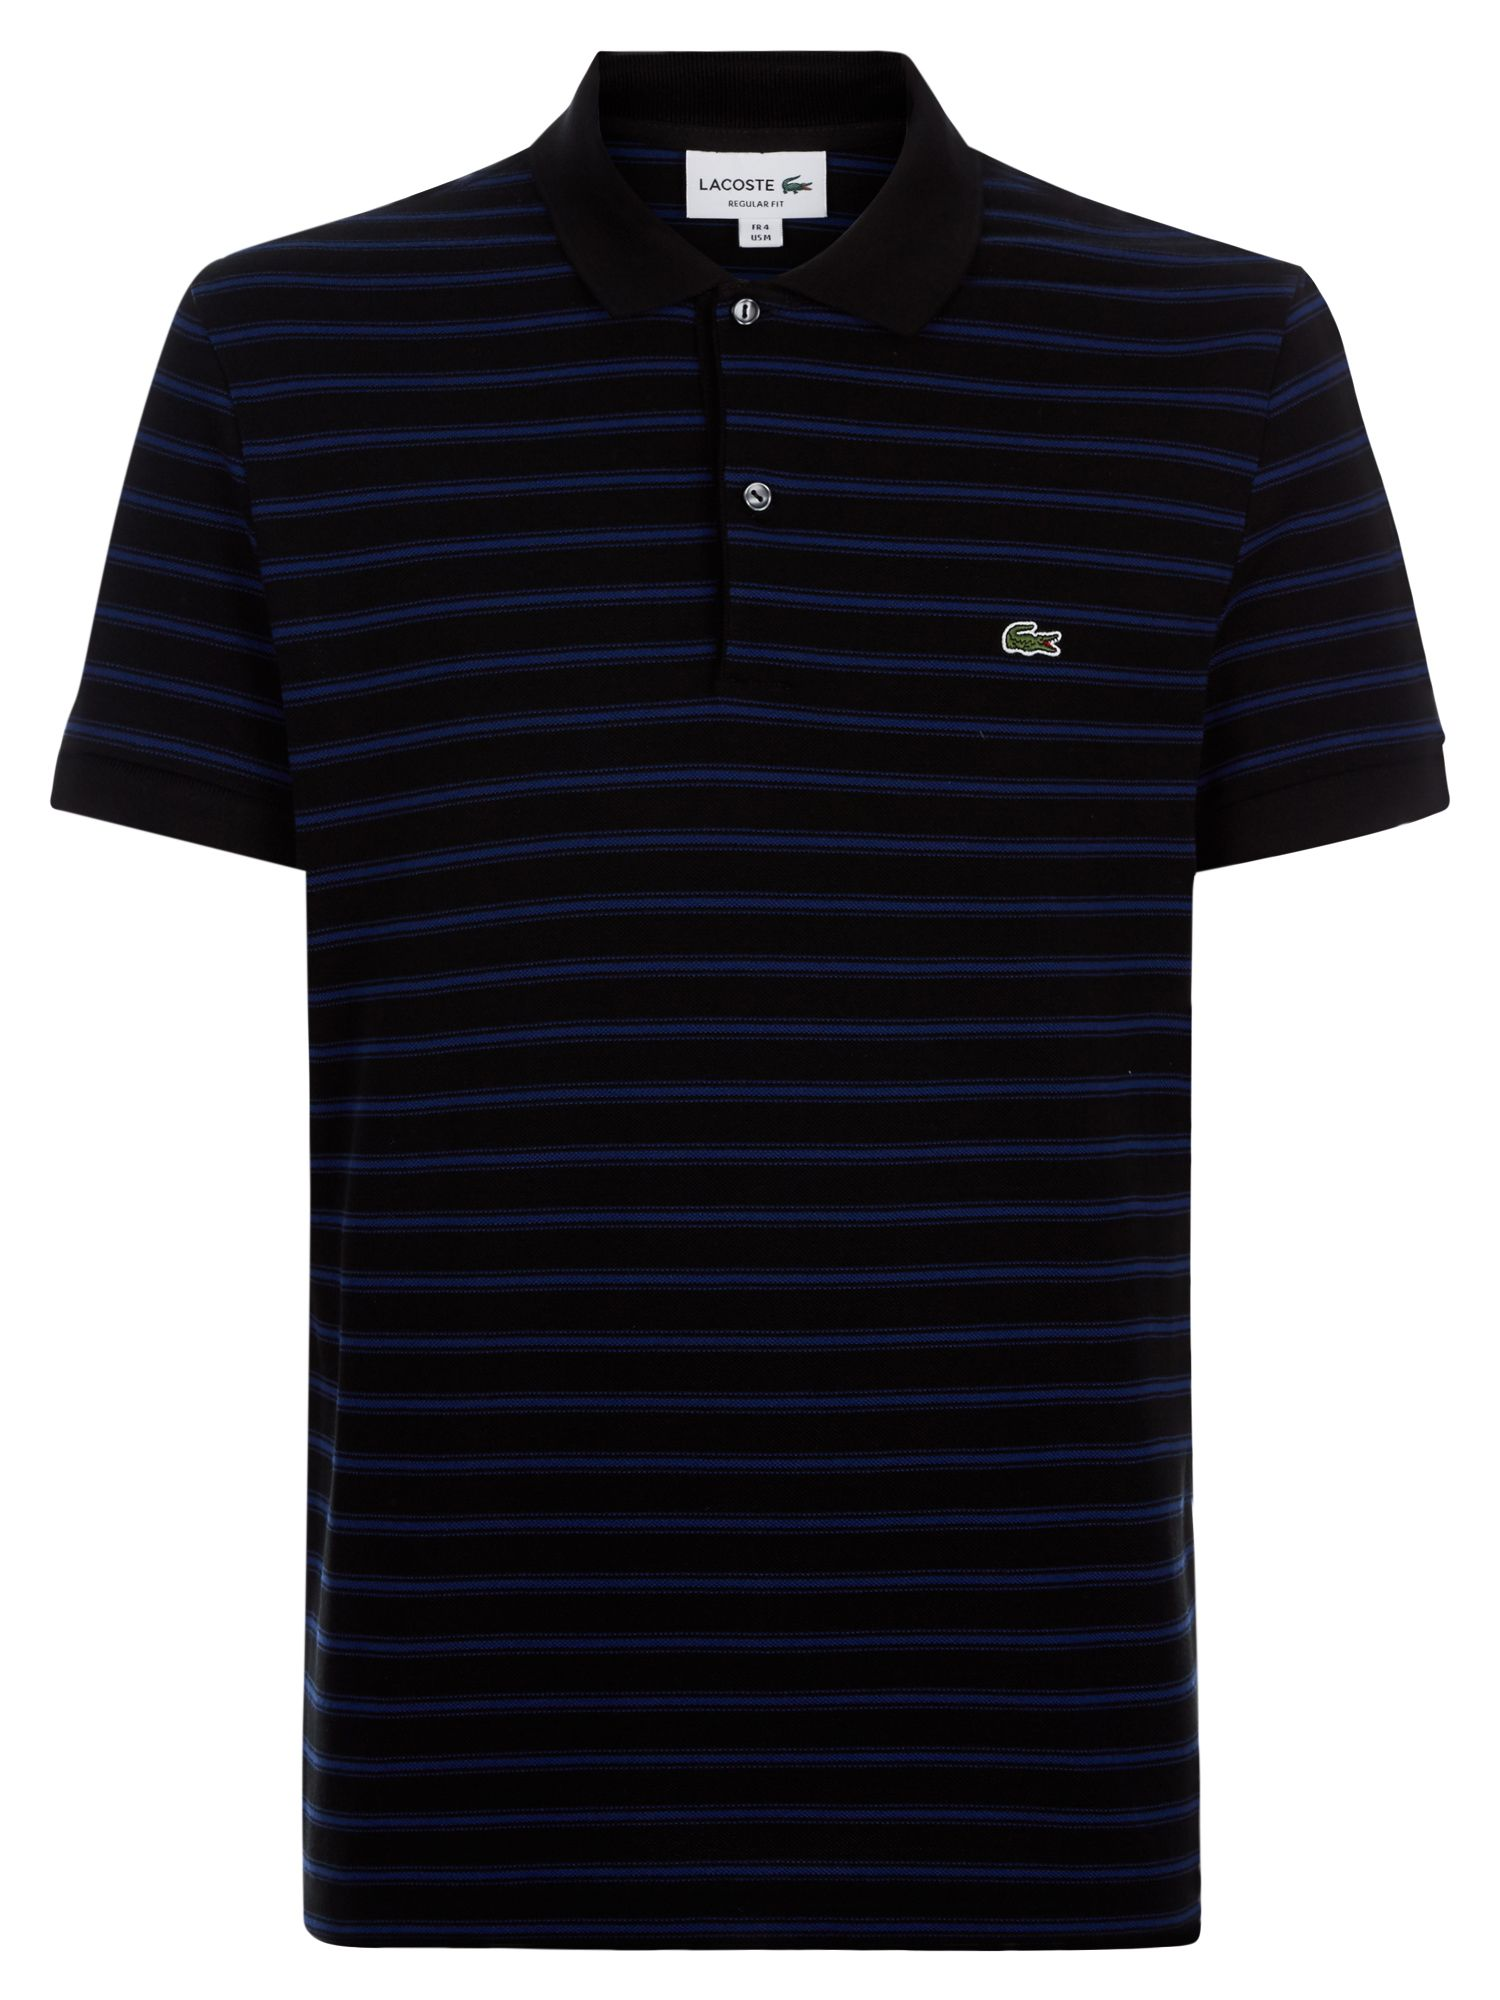 Men's Lacoste Stripped Polo, Black